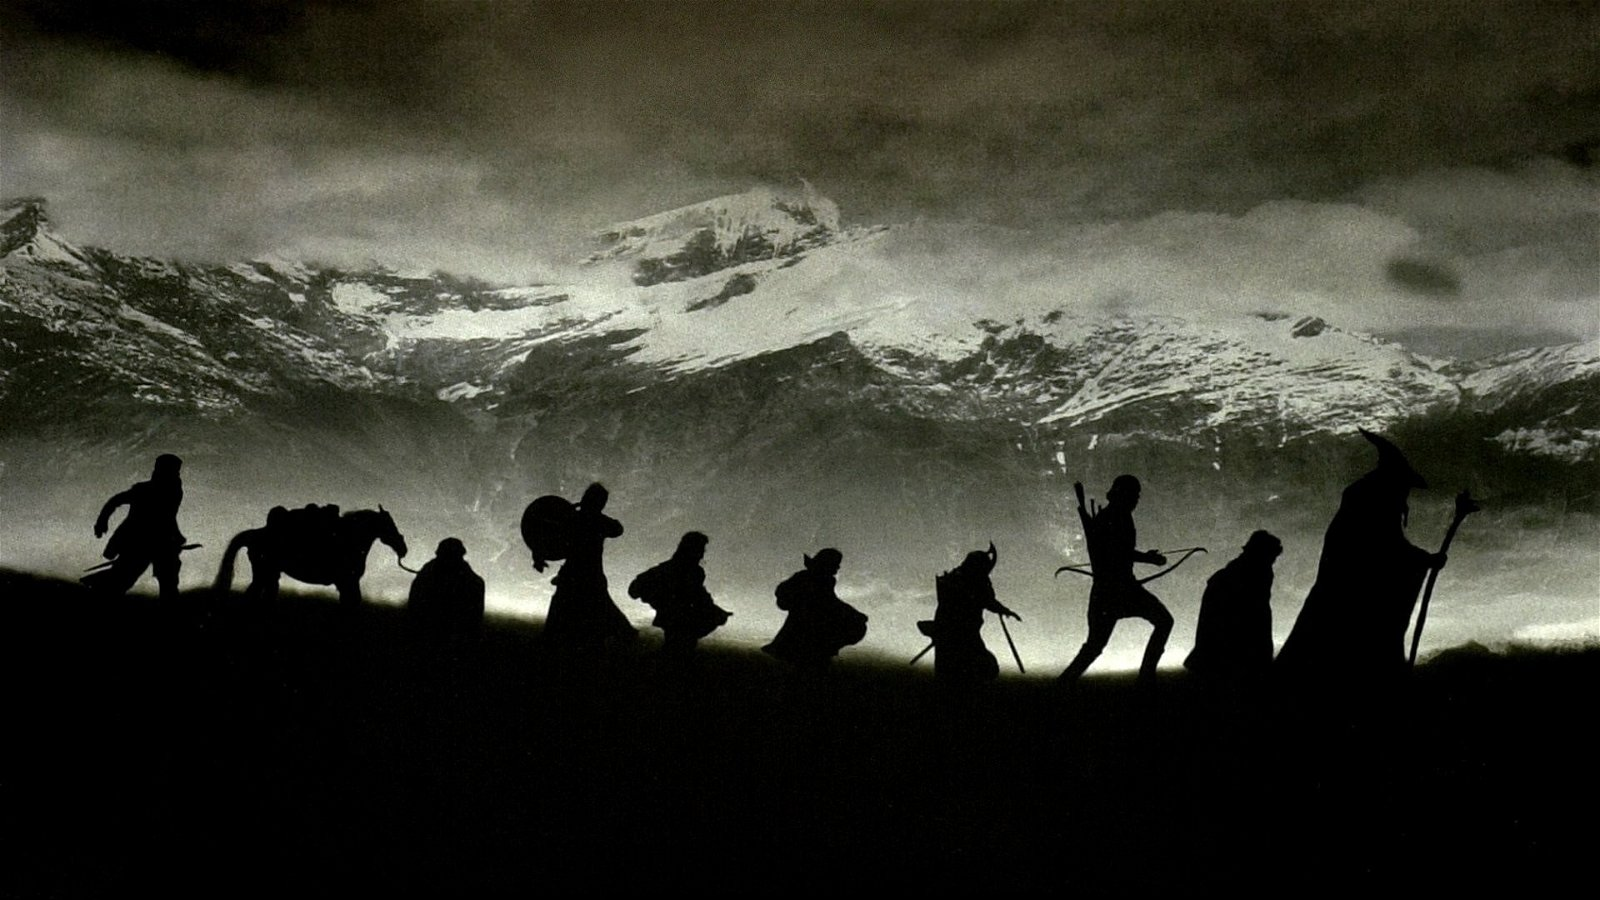 Lord of the Rings Series From Amazon Adds 20 Actors to Cast 1